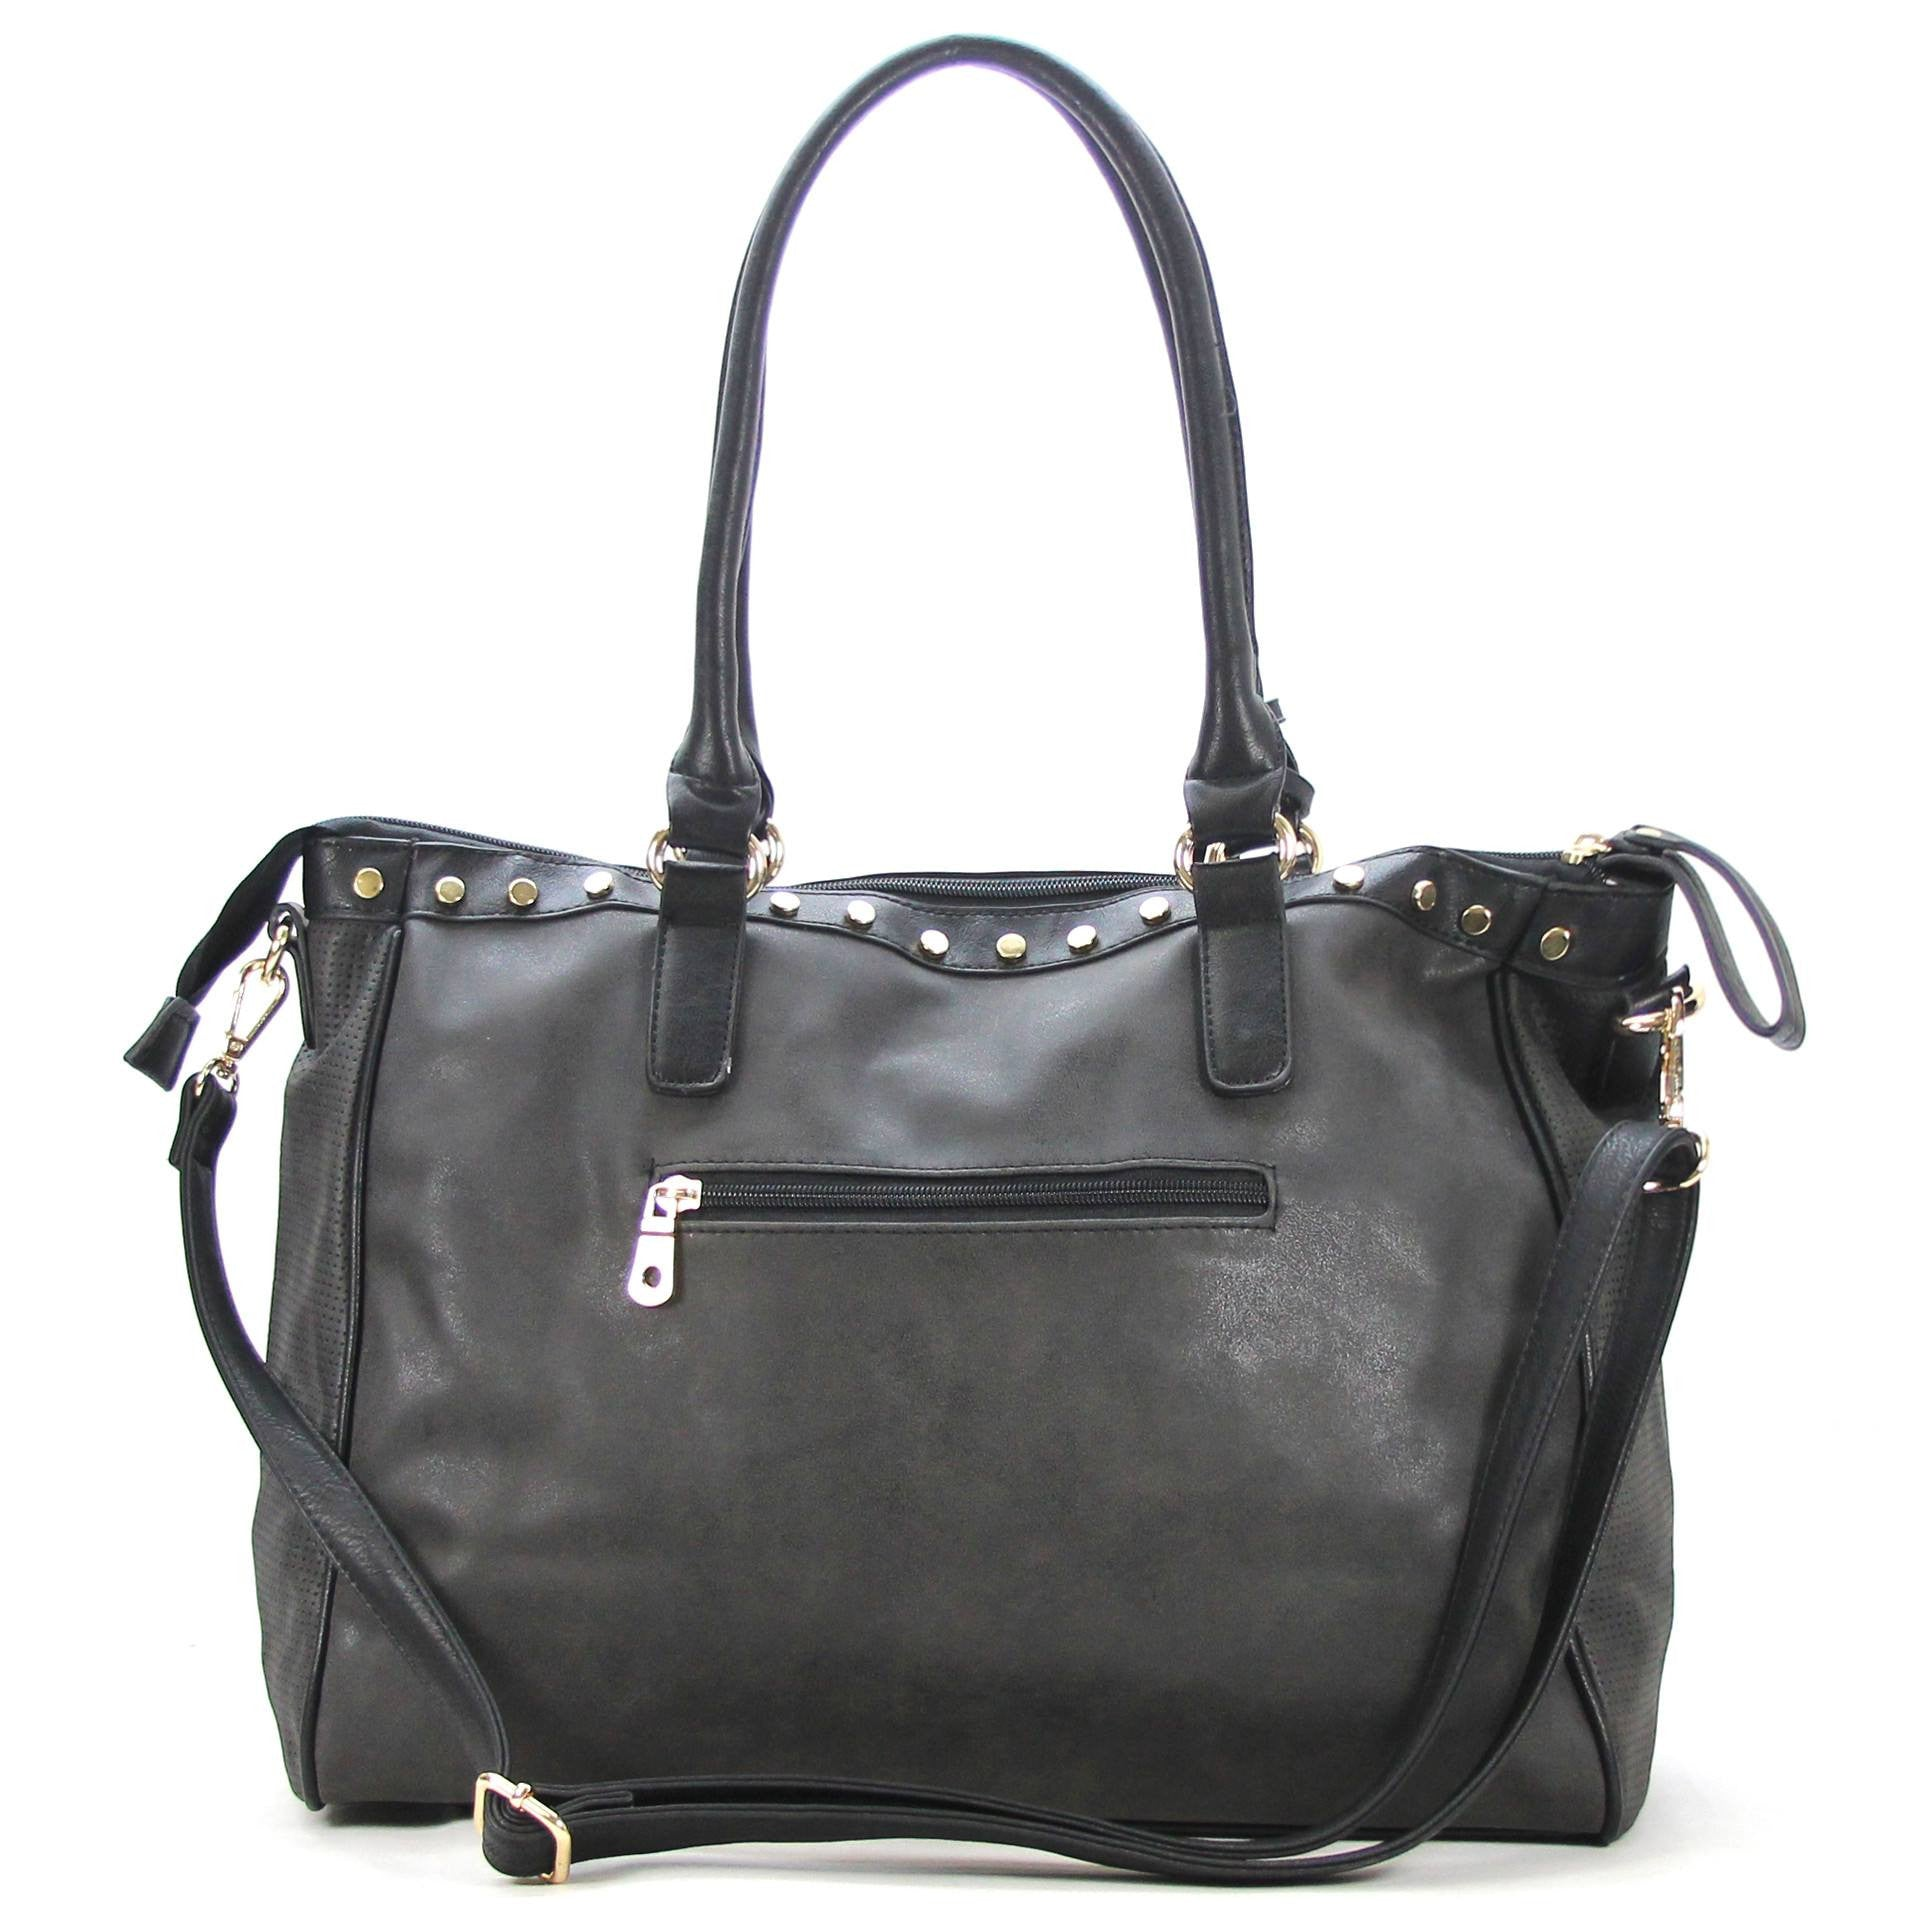 Handbag, Tote, Shoulder Bag - Robert Matthew Giana Tote - Black